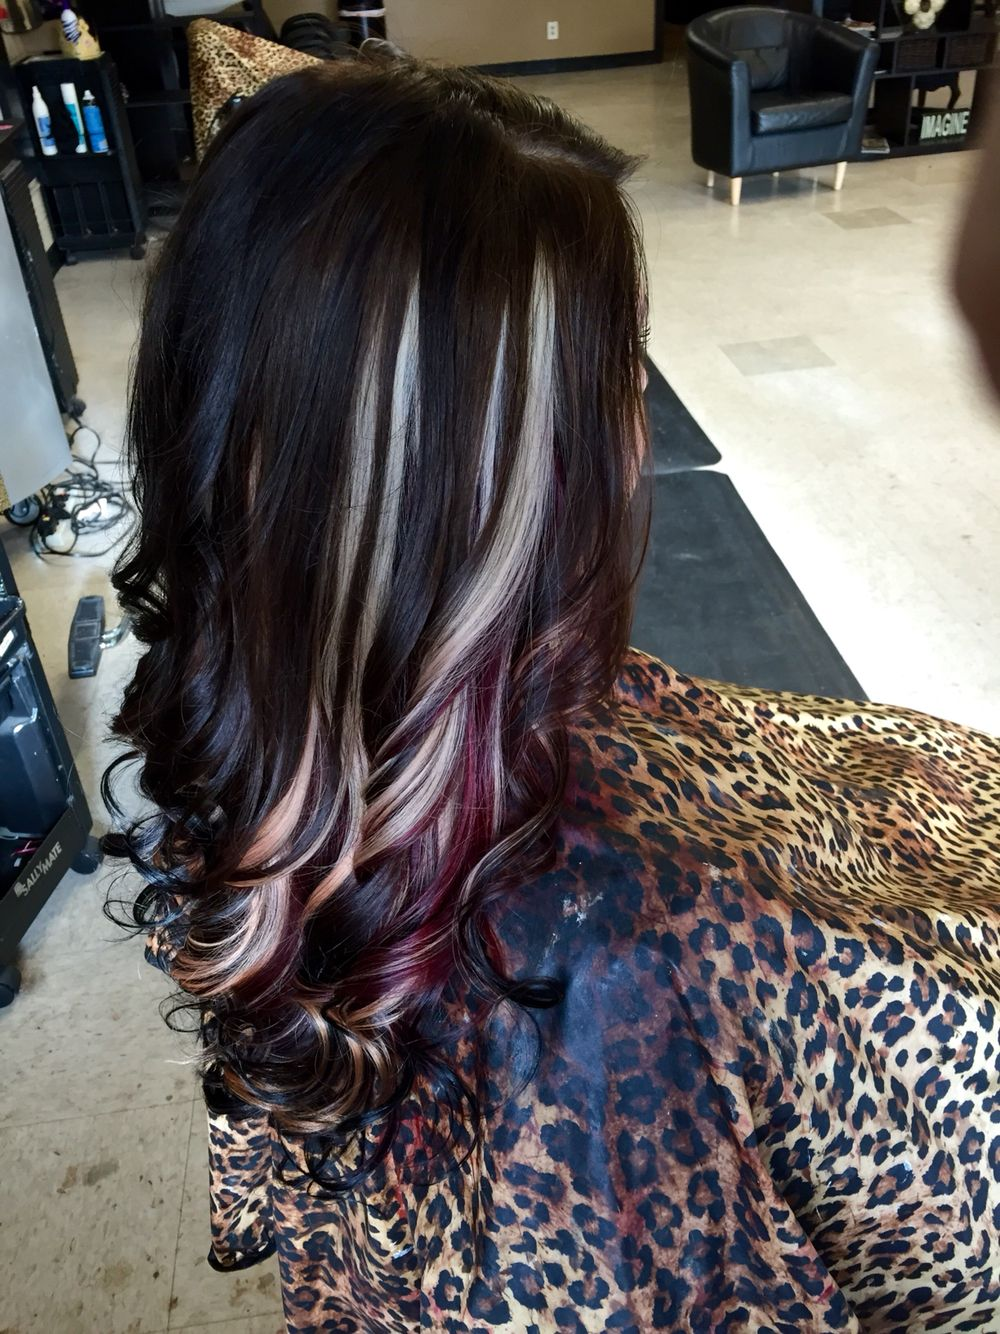 Mocha Brown With Blonde And Red Violet Peekaboos Hair By Heather